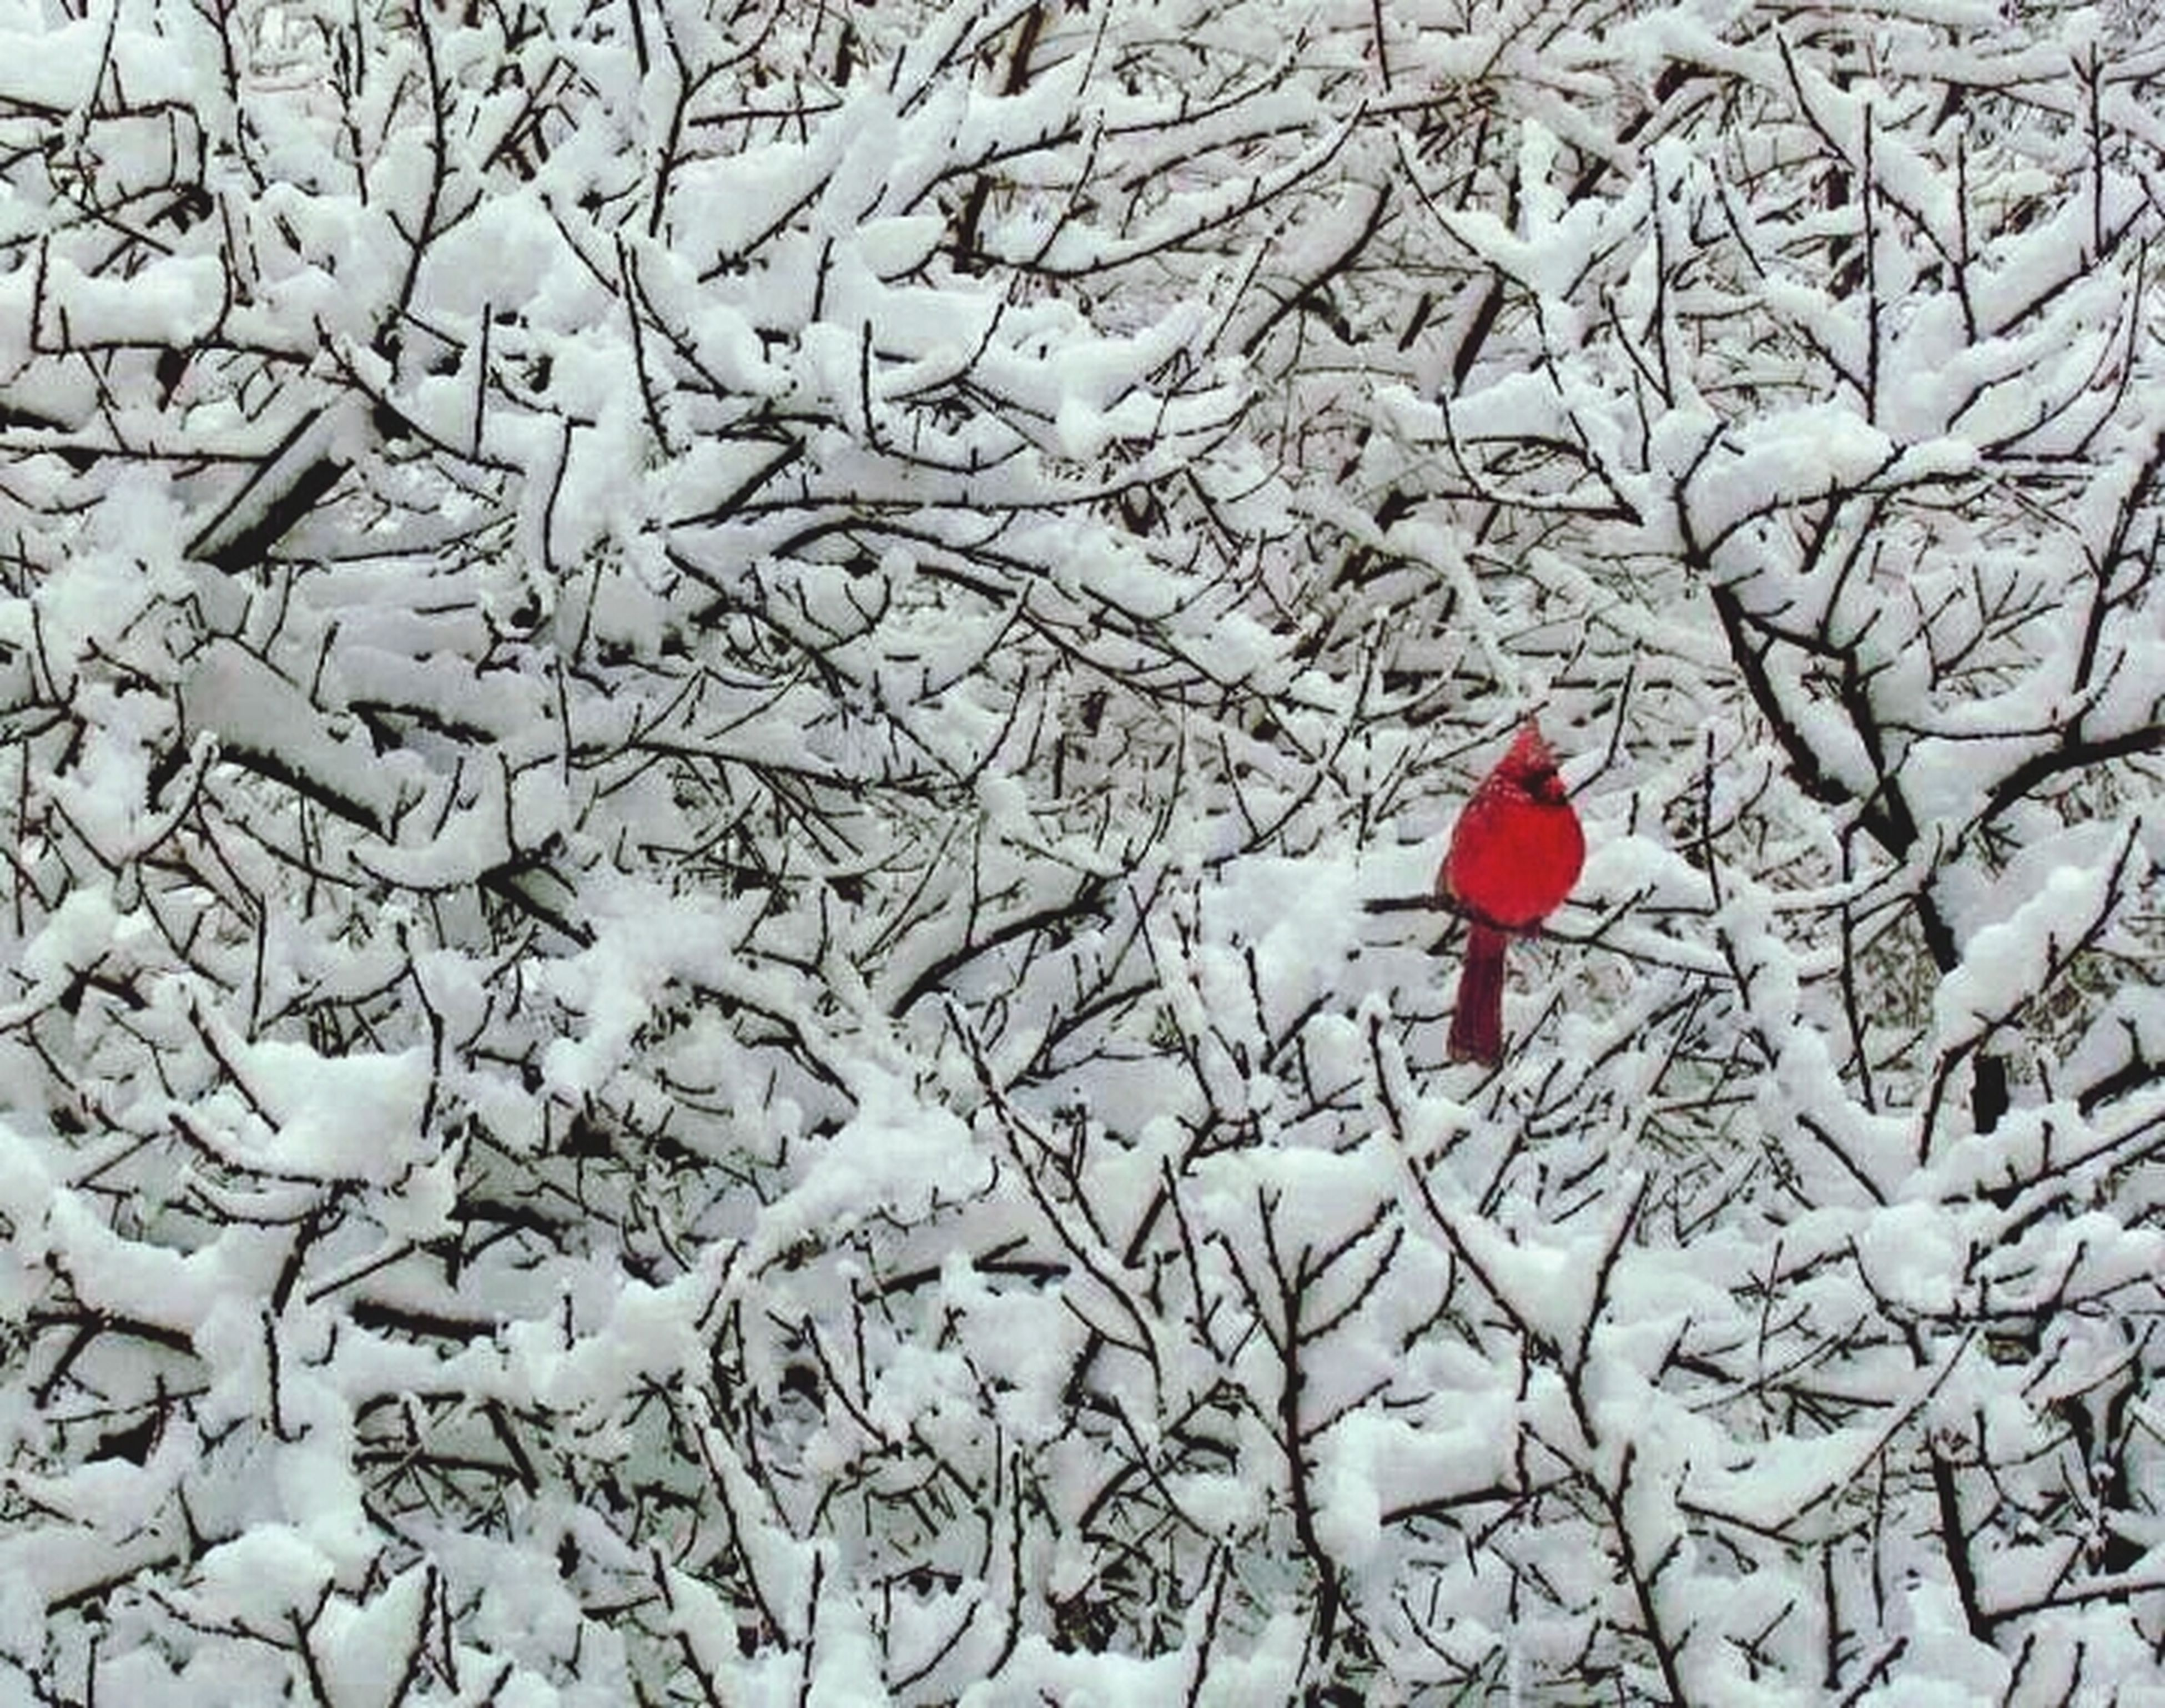 bird, red, bare tree, winter, snow, cold temperature, high angle view, season, branch, water, reflection, lake, nature, weather, tranquility, day, tree, no people, outdoors, beauty in nature